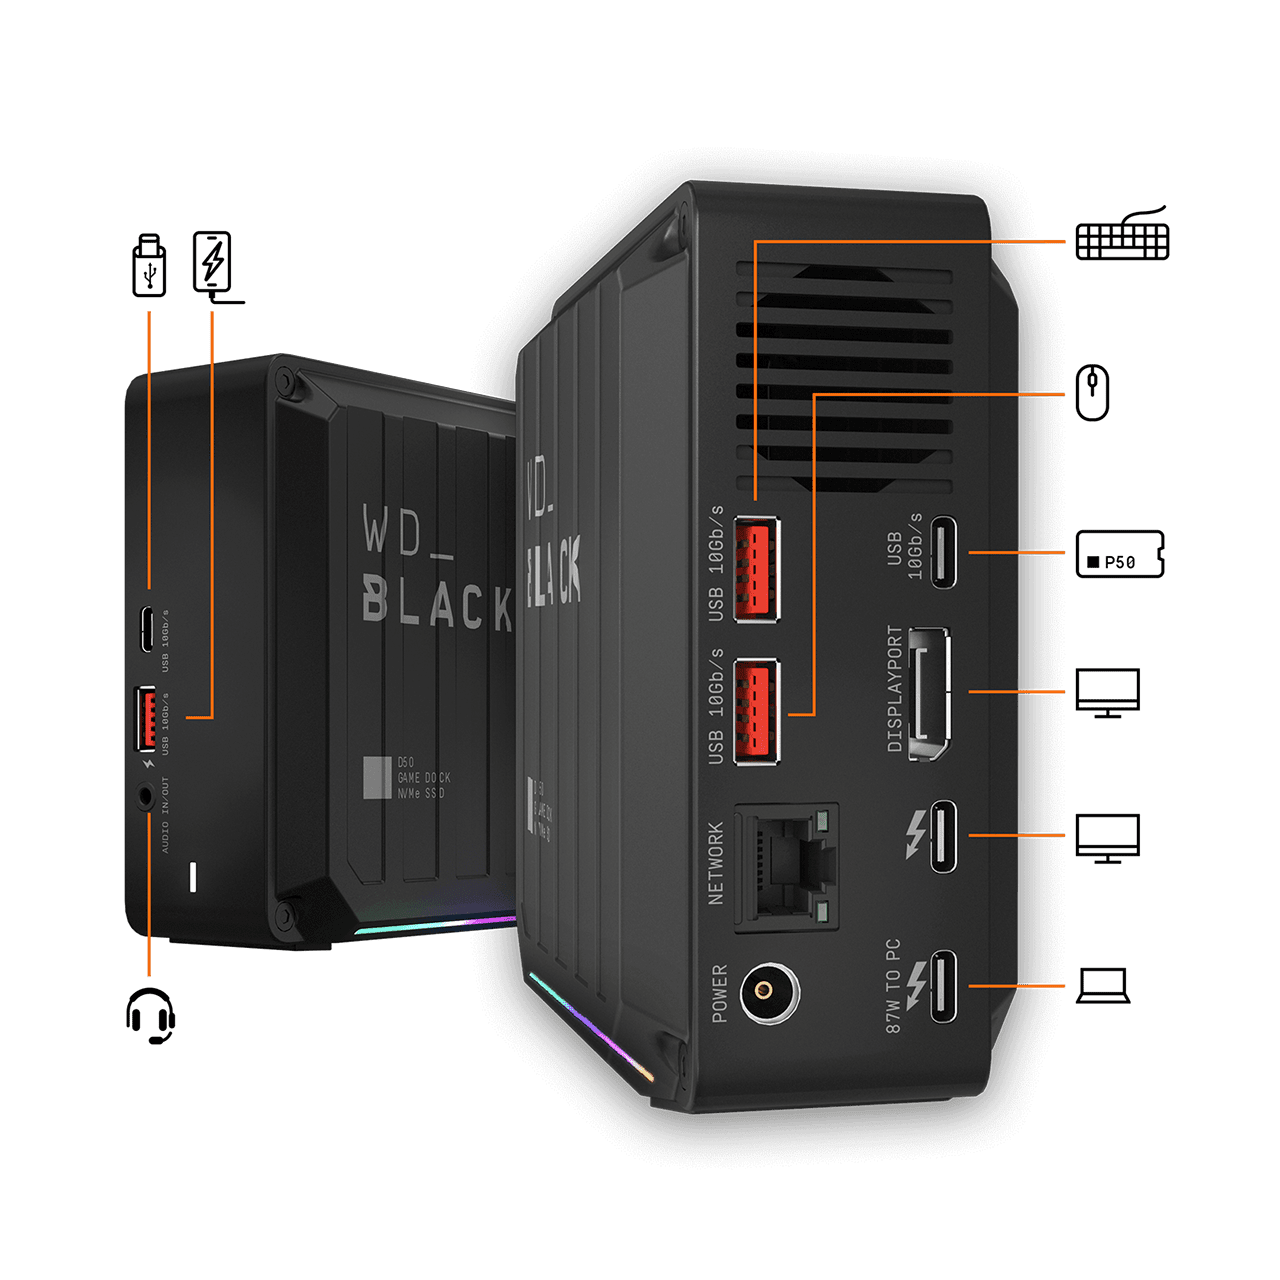 Western Digital D50 Game NVMe docking station is a great way to utilize that Thunderbolt 3 port